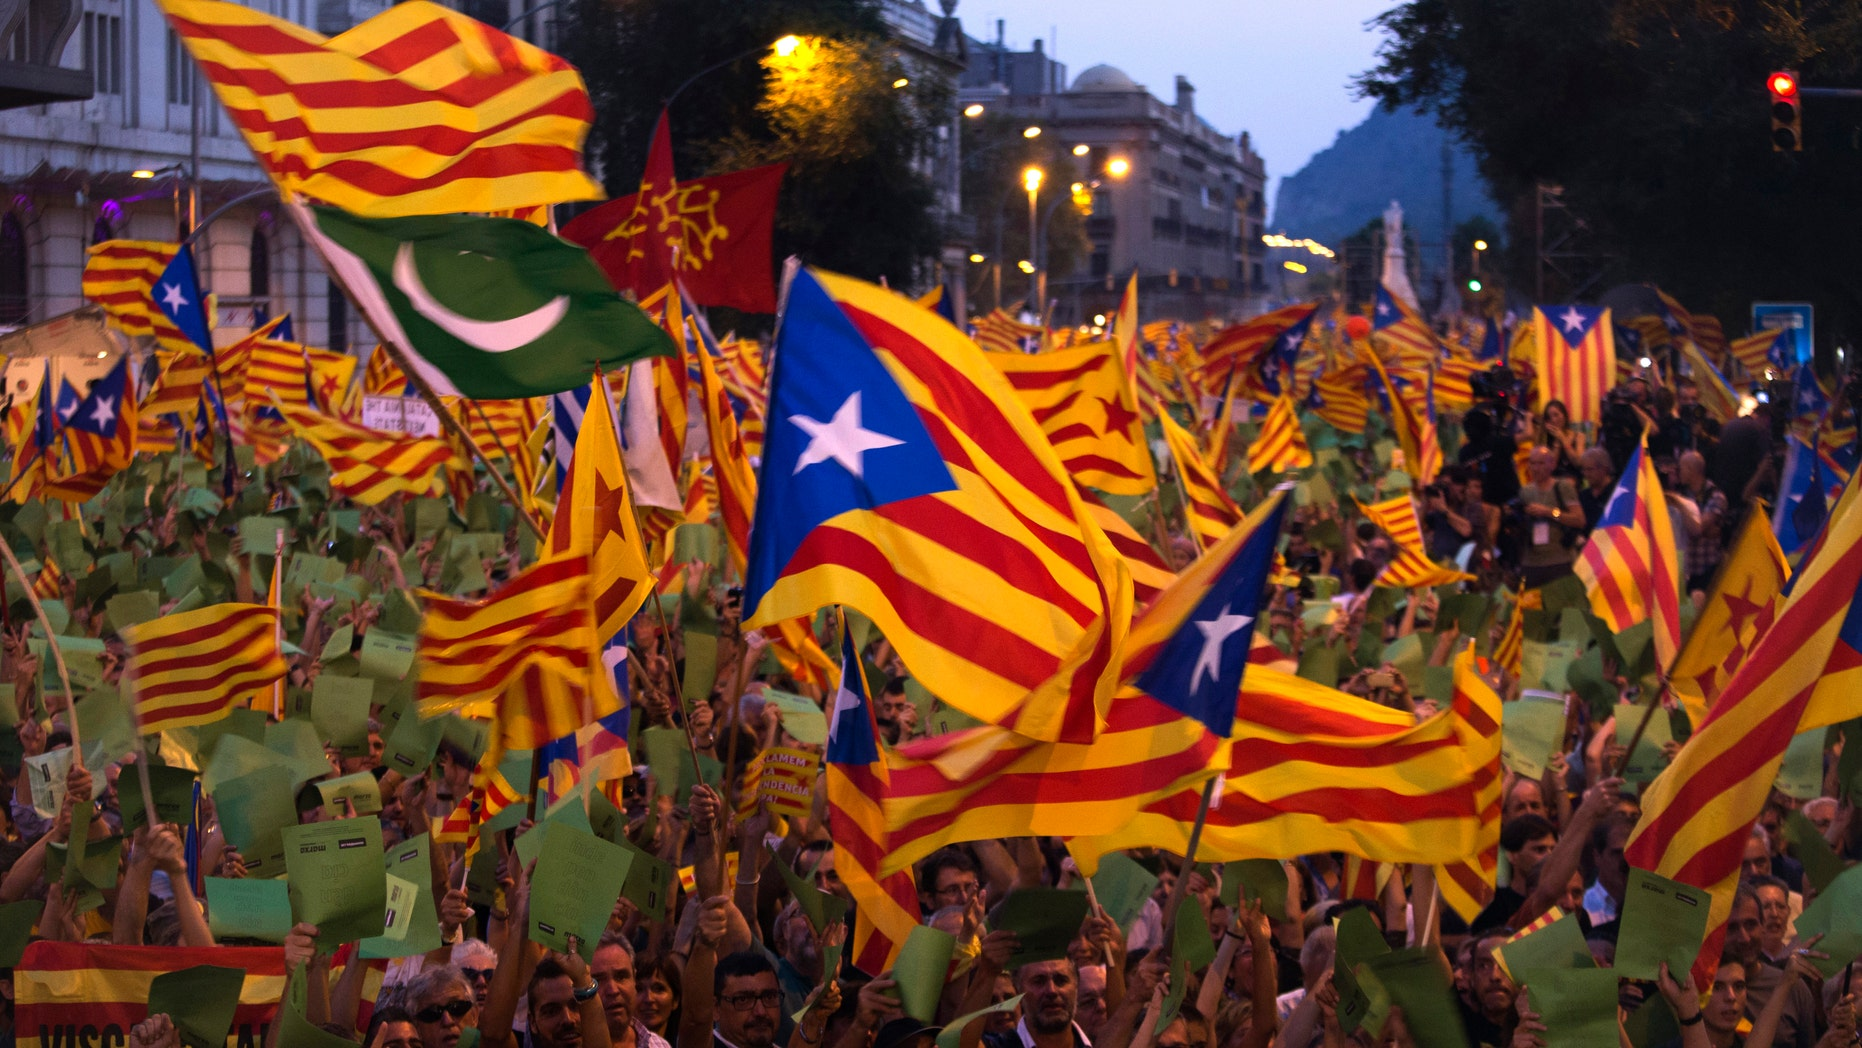 Demonstrators wave Catalan flags during a protest rally in Barcelona , Spain, in this Tuesday, Sept. 11, 2012 file photo. On Thursday, regional lawmakers voted to hold a referendum for Catalonia's seven million citizens to decide whether they want to break away from Spain. (AP Photo/Emilio Morenatti, File)